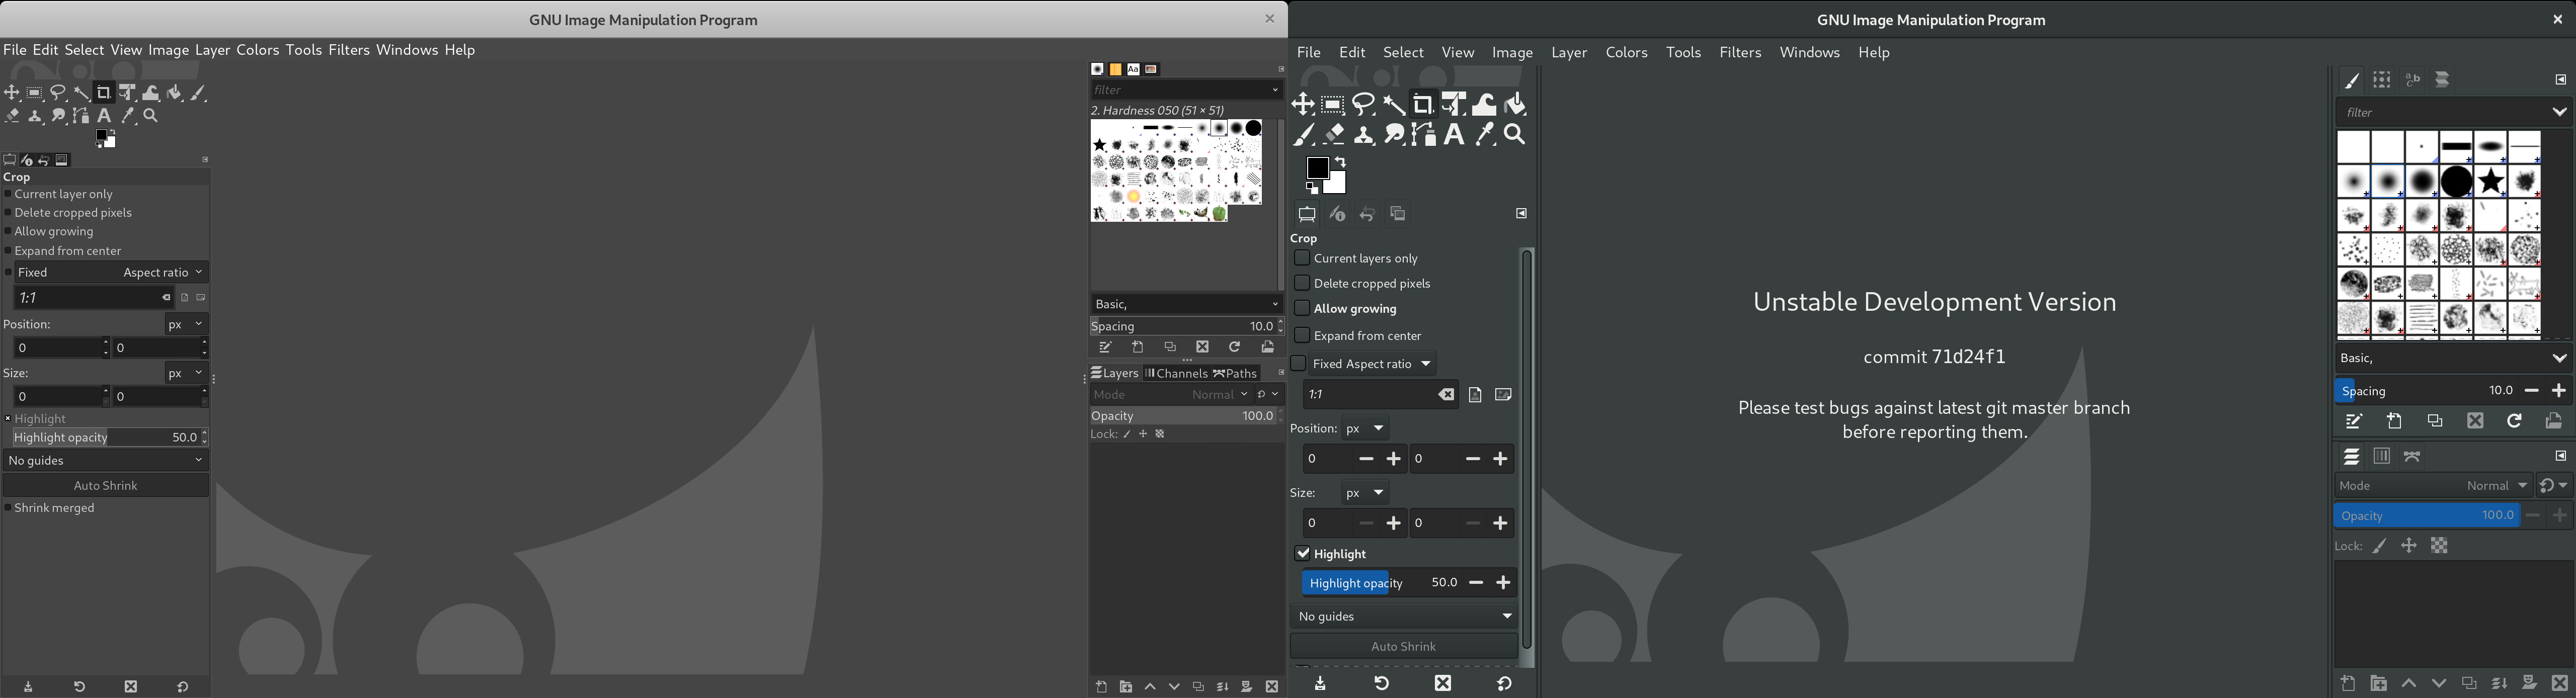 GIMP 2.10.22 and 2.99.2 interfaces side by side